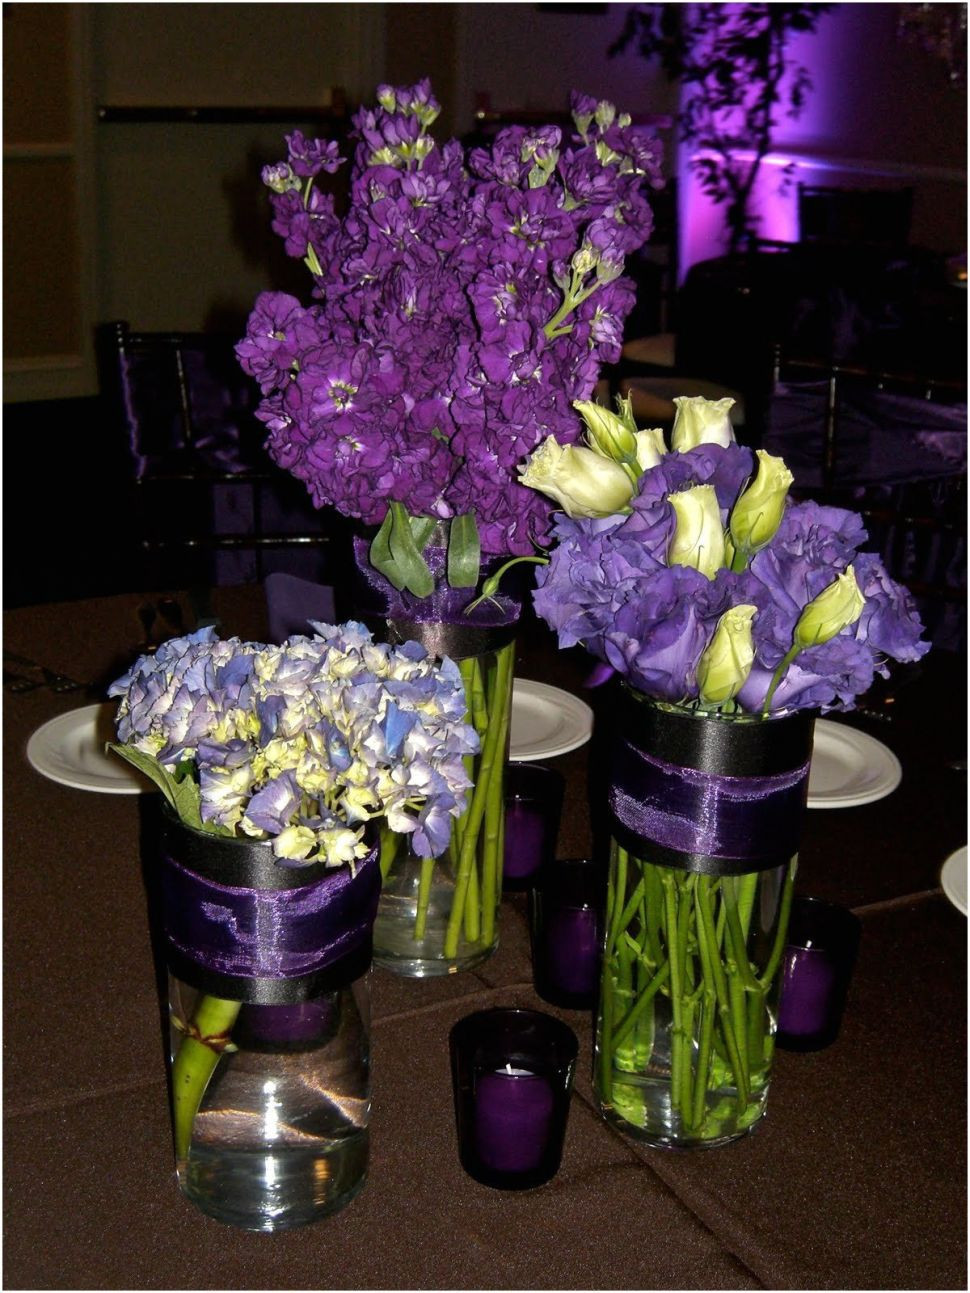 ebay artificial flowers in vase of purple flower vase image purple artificial flowers incredible tall for purple flower vase photos purple silk flowers stupendous dsc 1329h vases purple previ 0d floor of